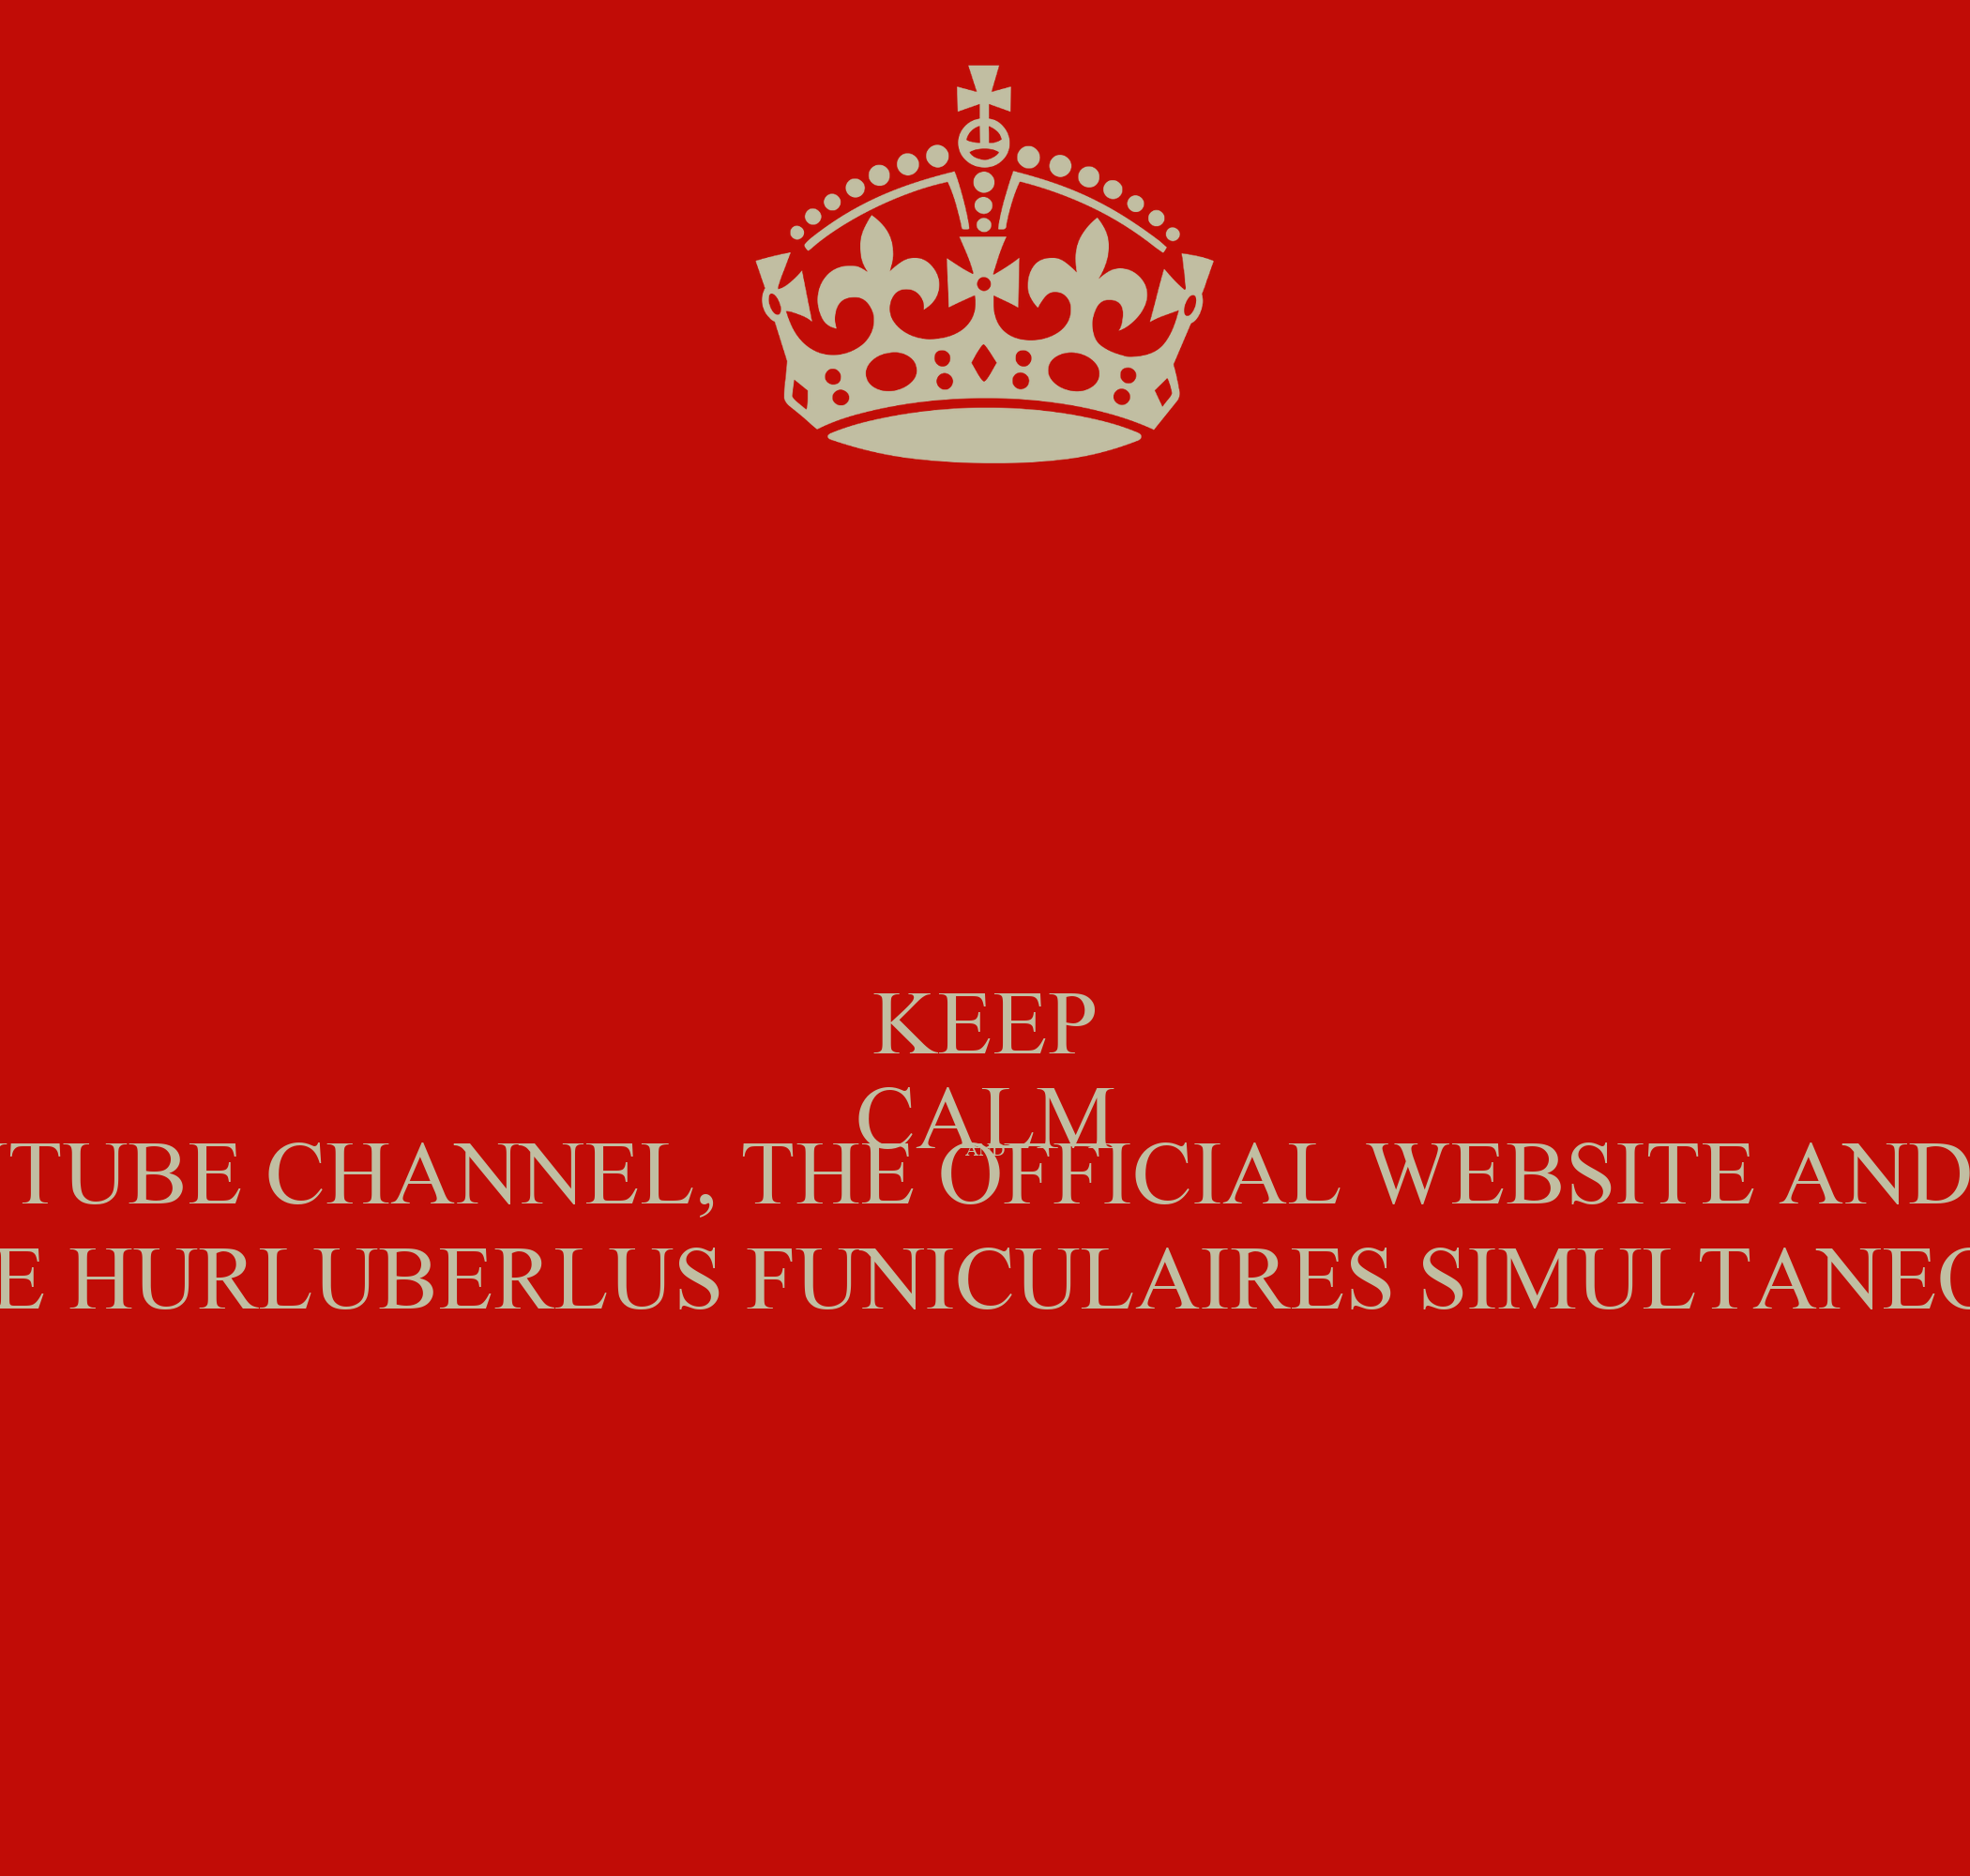 Keep Calm And Visit The Youtube Channel The Official